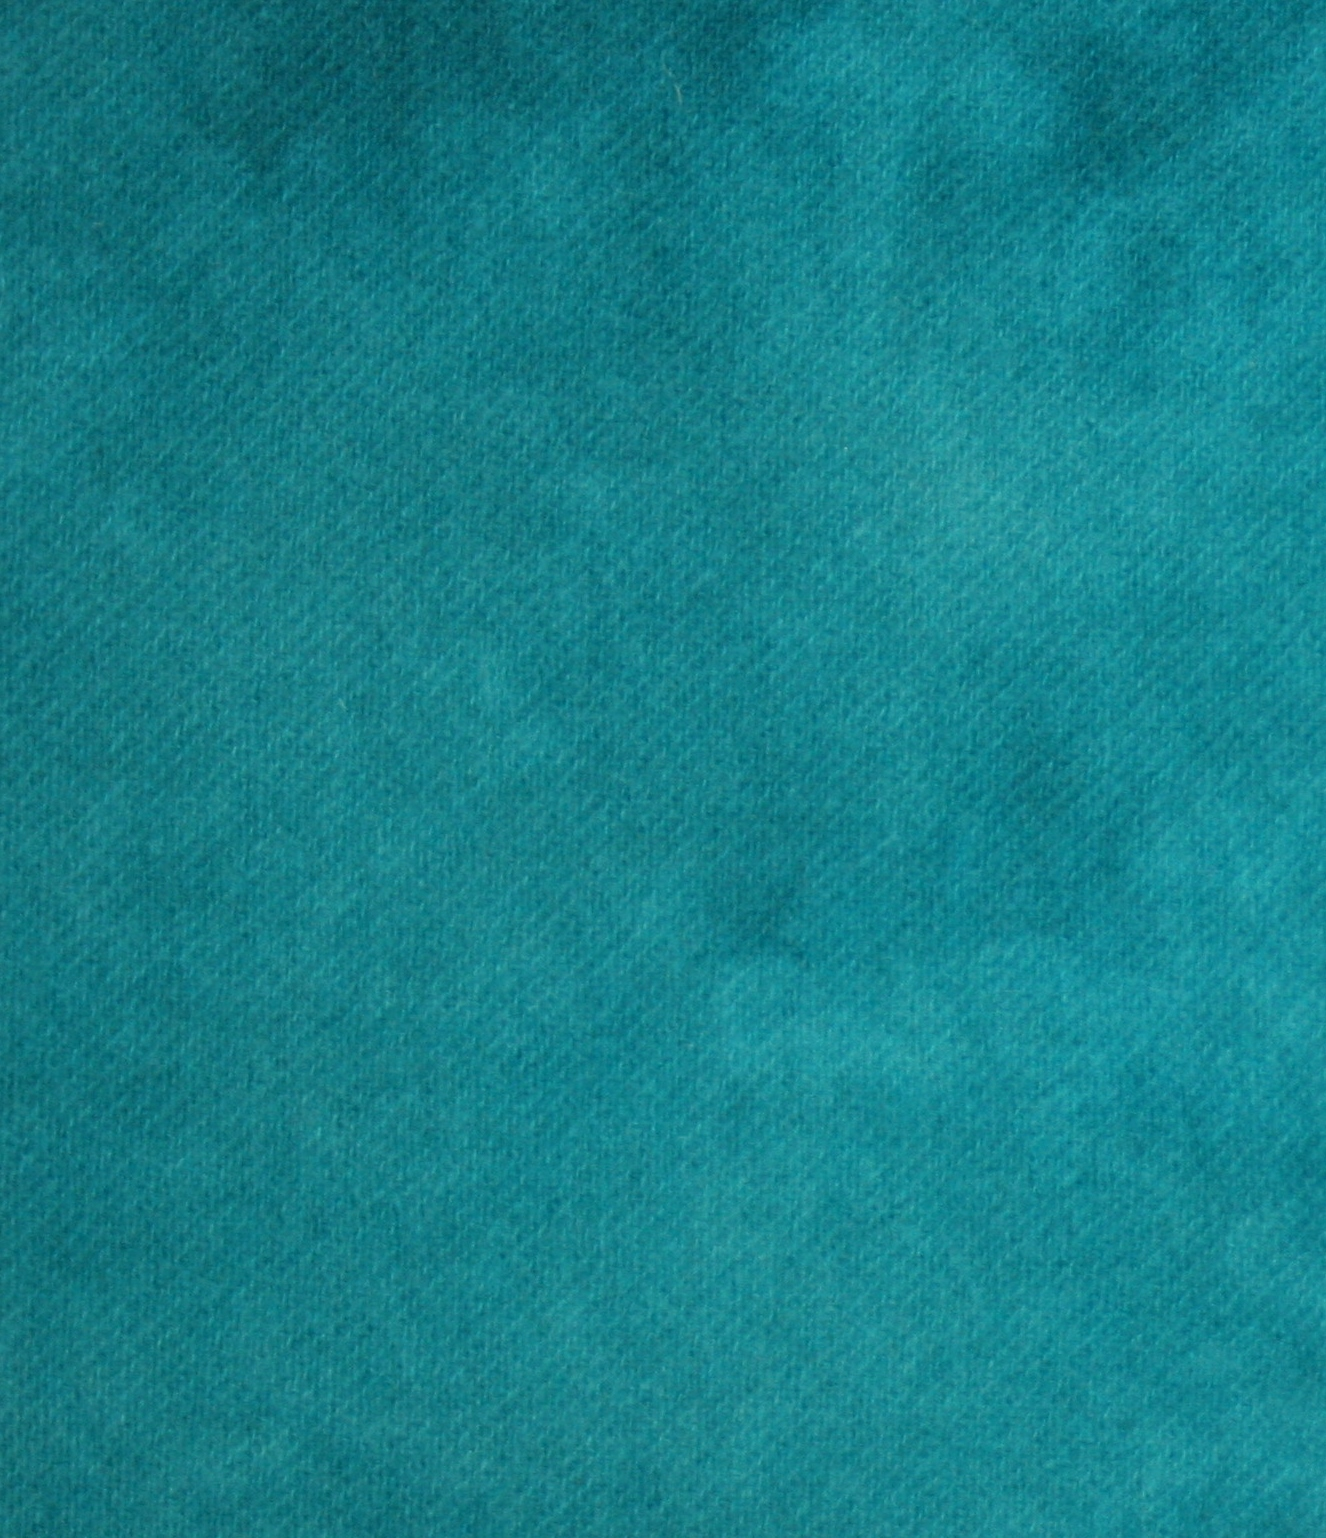 Agave Artisan Hand Dyed 100% Wool Part of the Totally Teal Collection